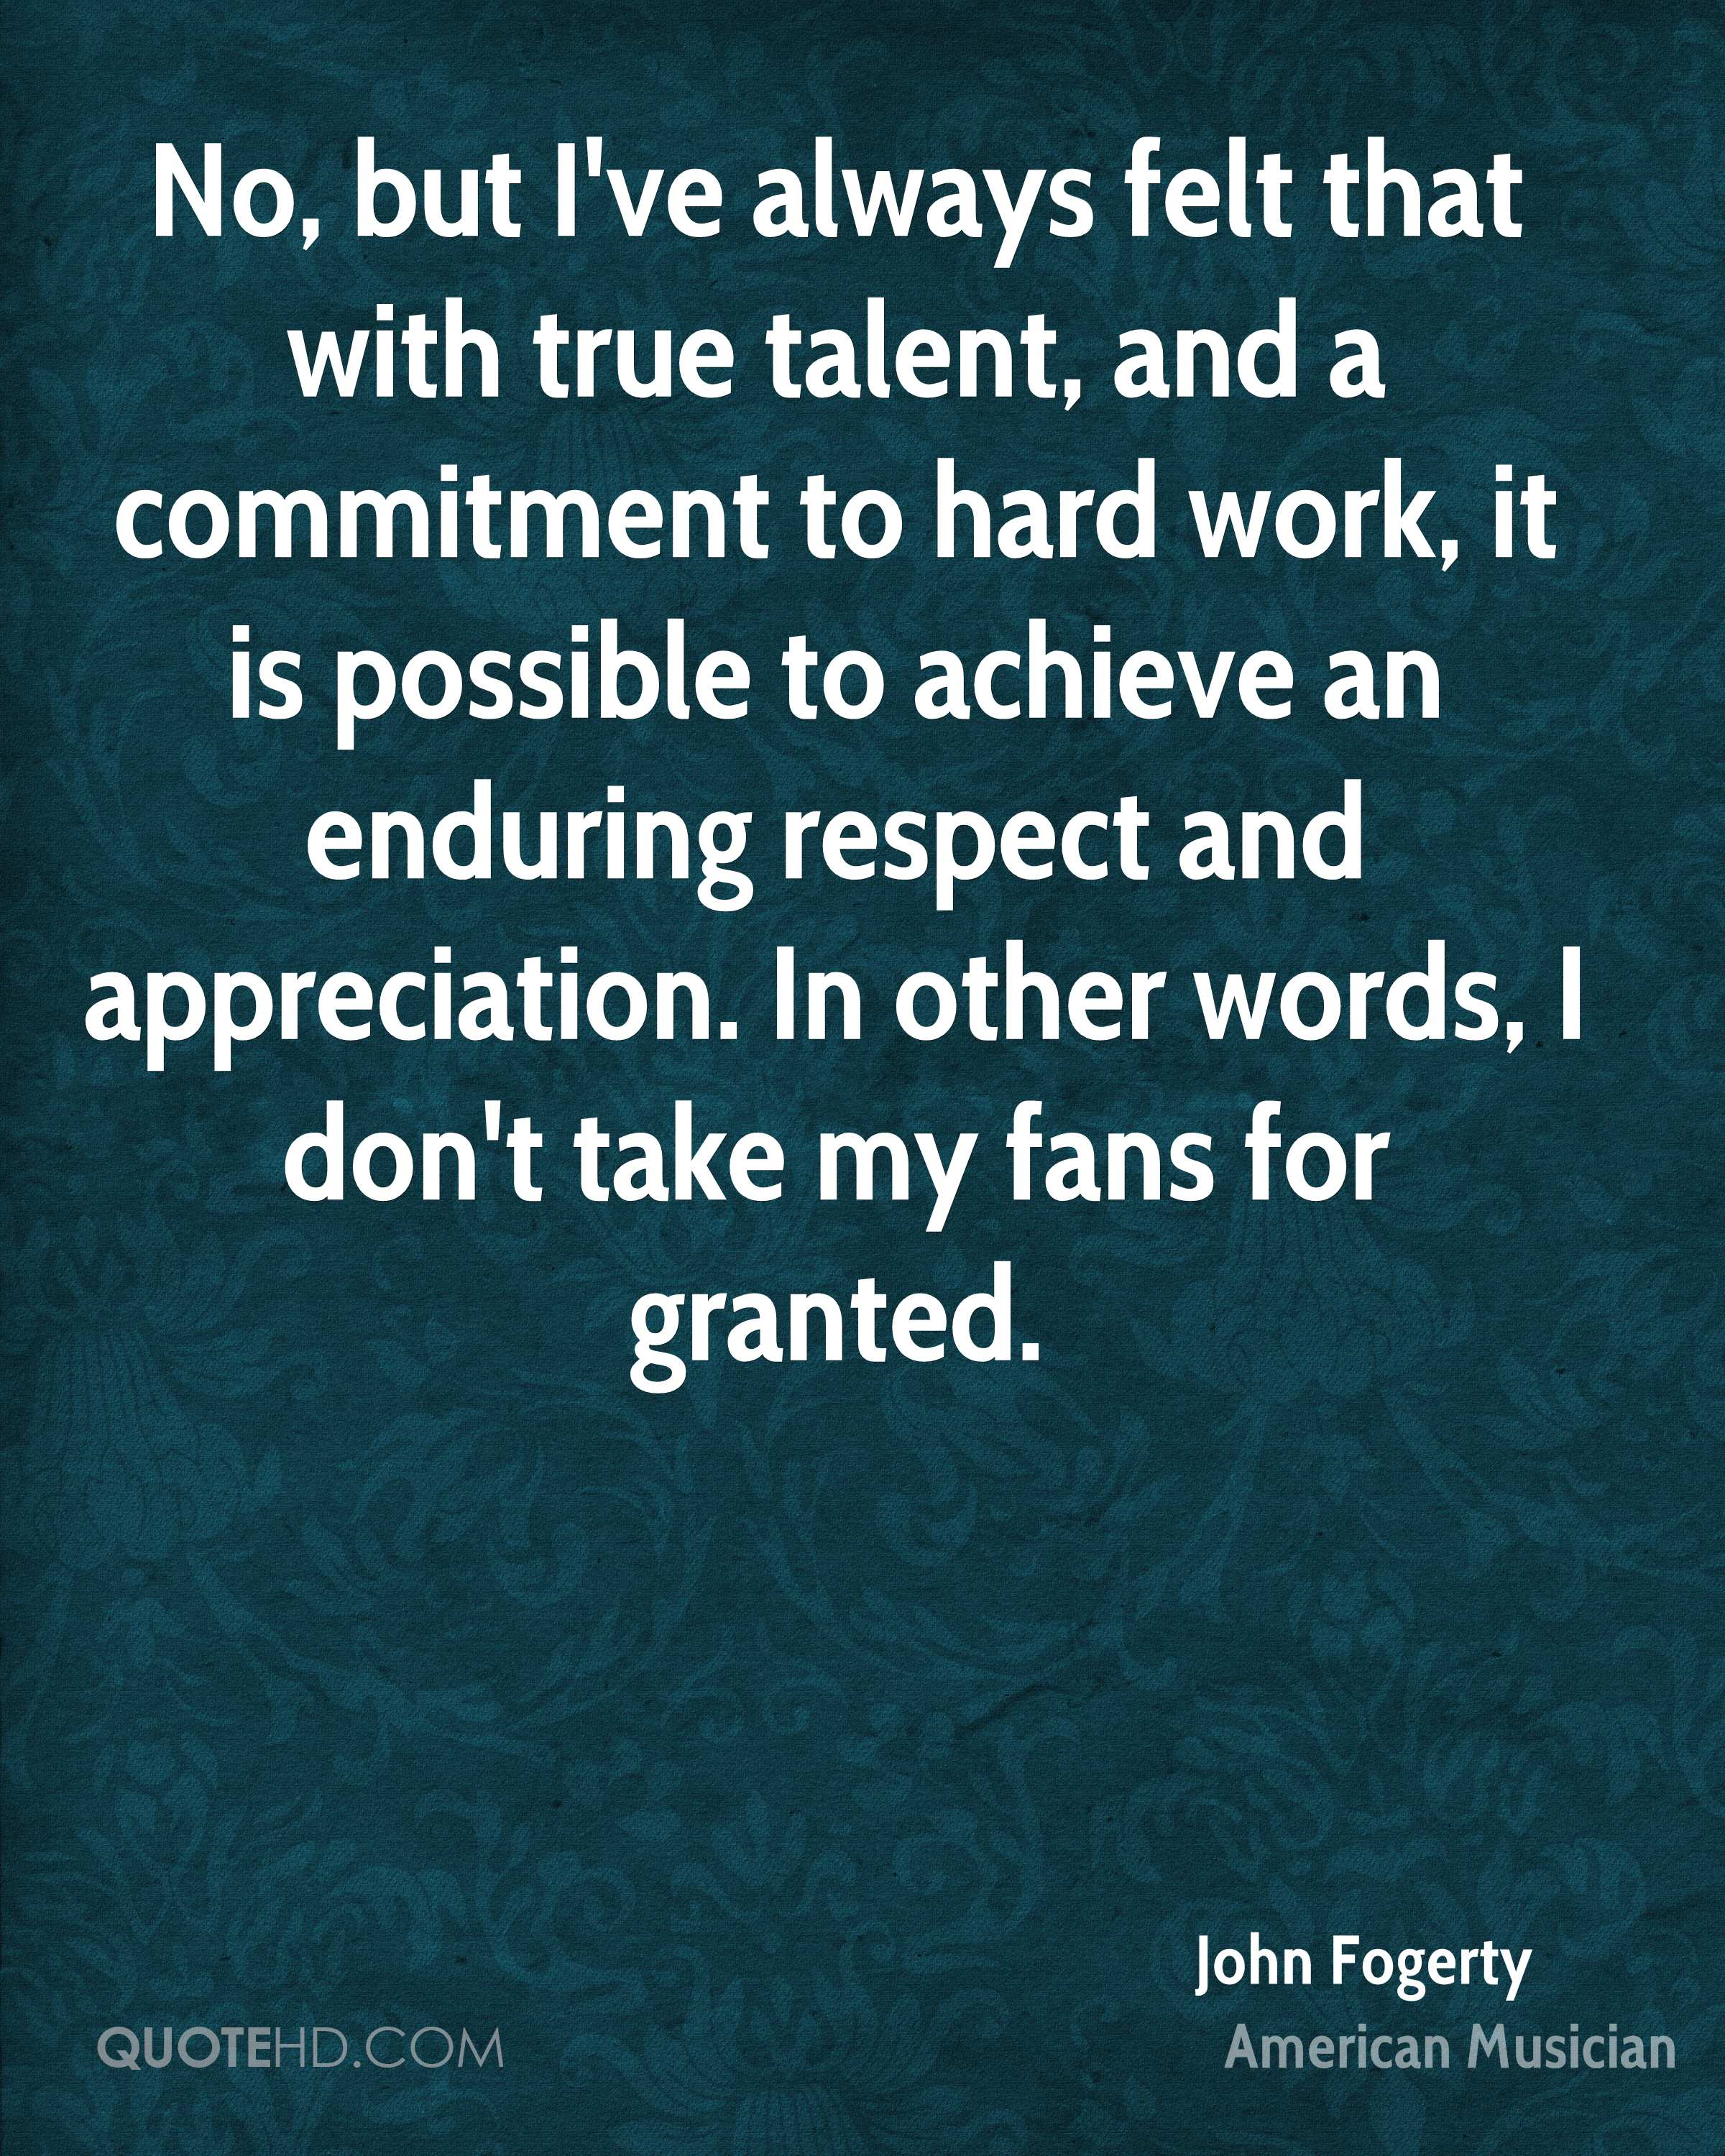 It Takes Dedication And Hard Work To Constantly Improve: John Fogerty Quotes